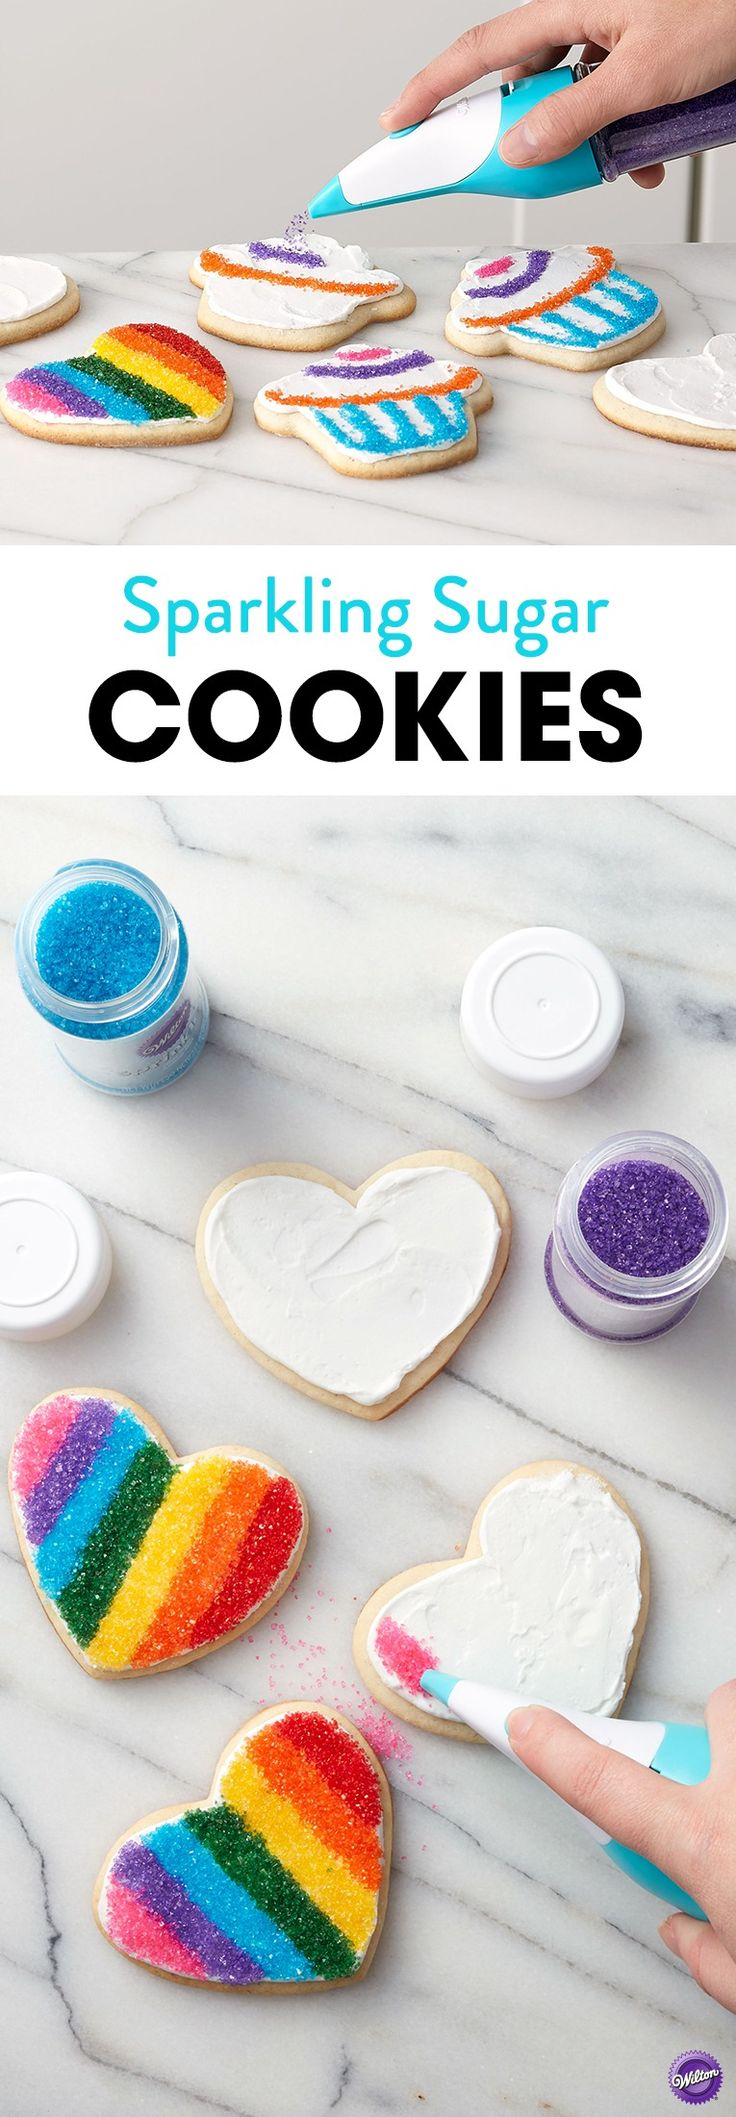 Great for birthday parties or edible party favors, these Sparkling Sugar Cookies are just as fun to make as they are to eat! Use the Sugar Writer Sanding Sugar Pen and our wide assortment of Sanding Sugar sprinkles to add your own fun details to these frosted cookies. A fun project you can do with the whole family, these Sparkling Sugar Cookies will take cookie decorating to a whole new level!